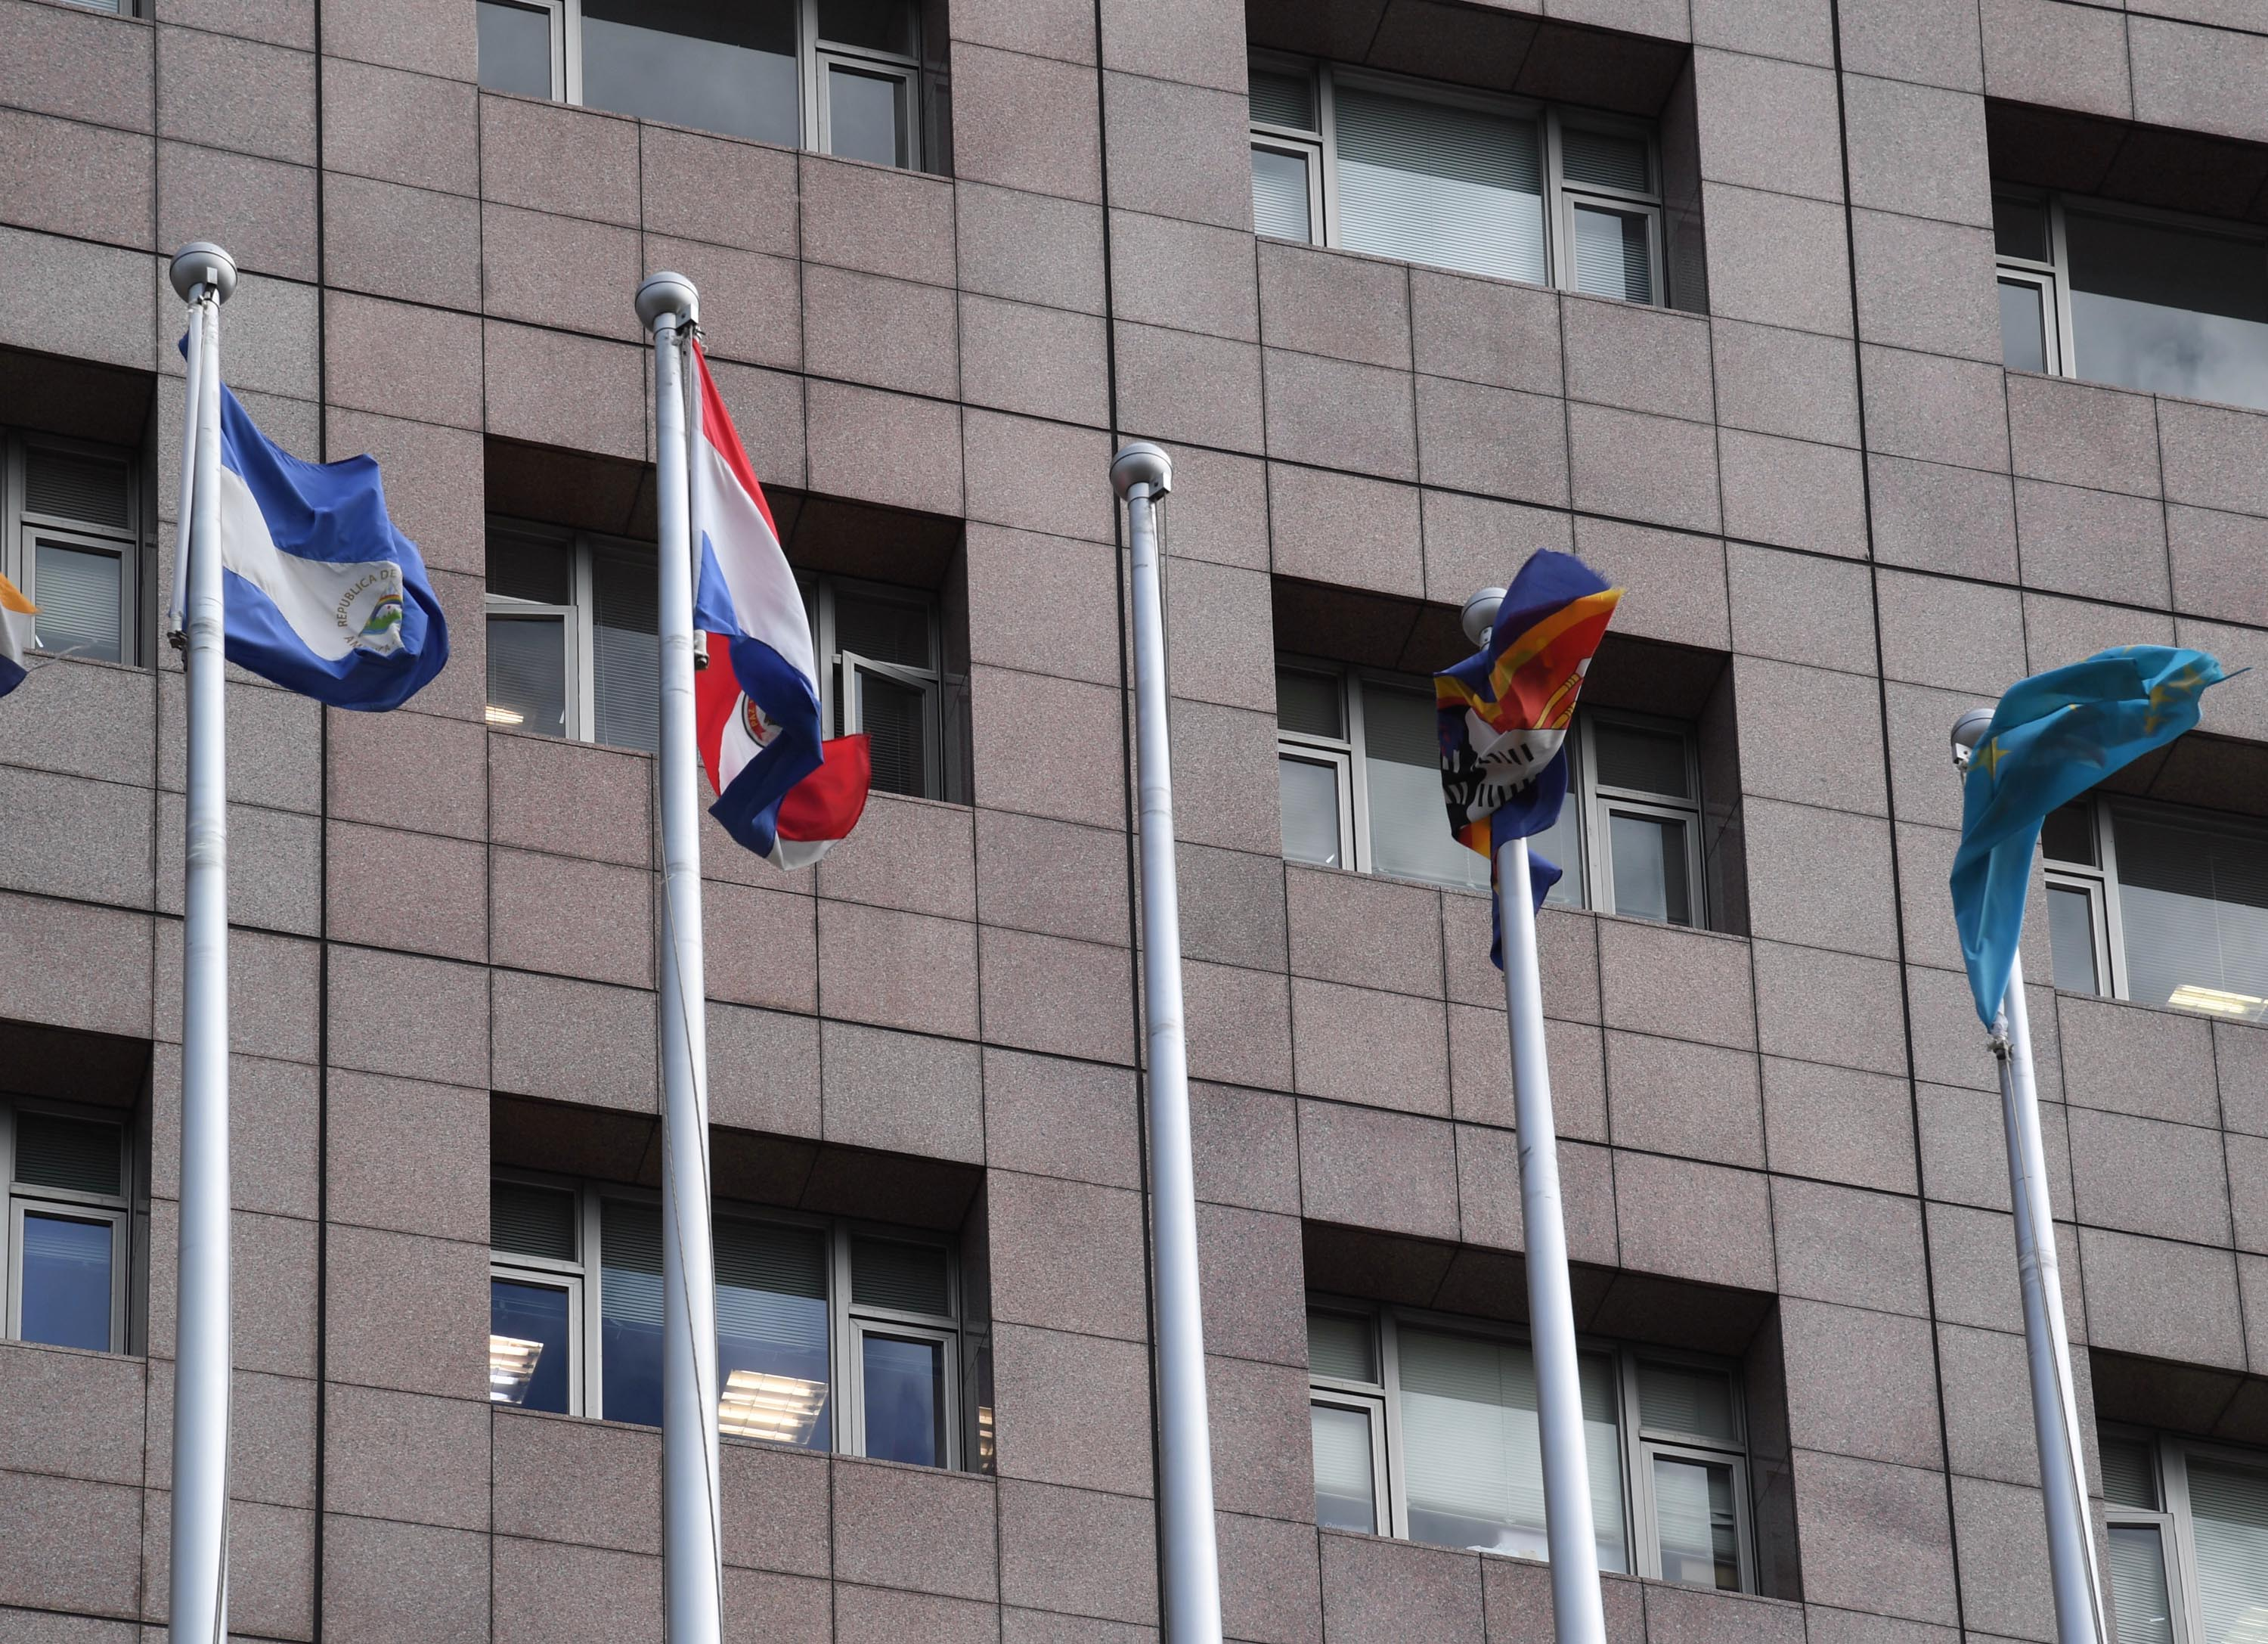 Taiwan removes flag of Sao Tome and Principe from official buildings.